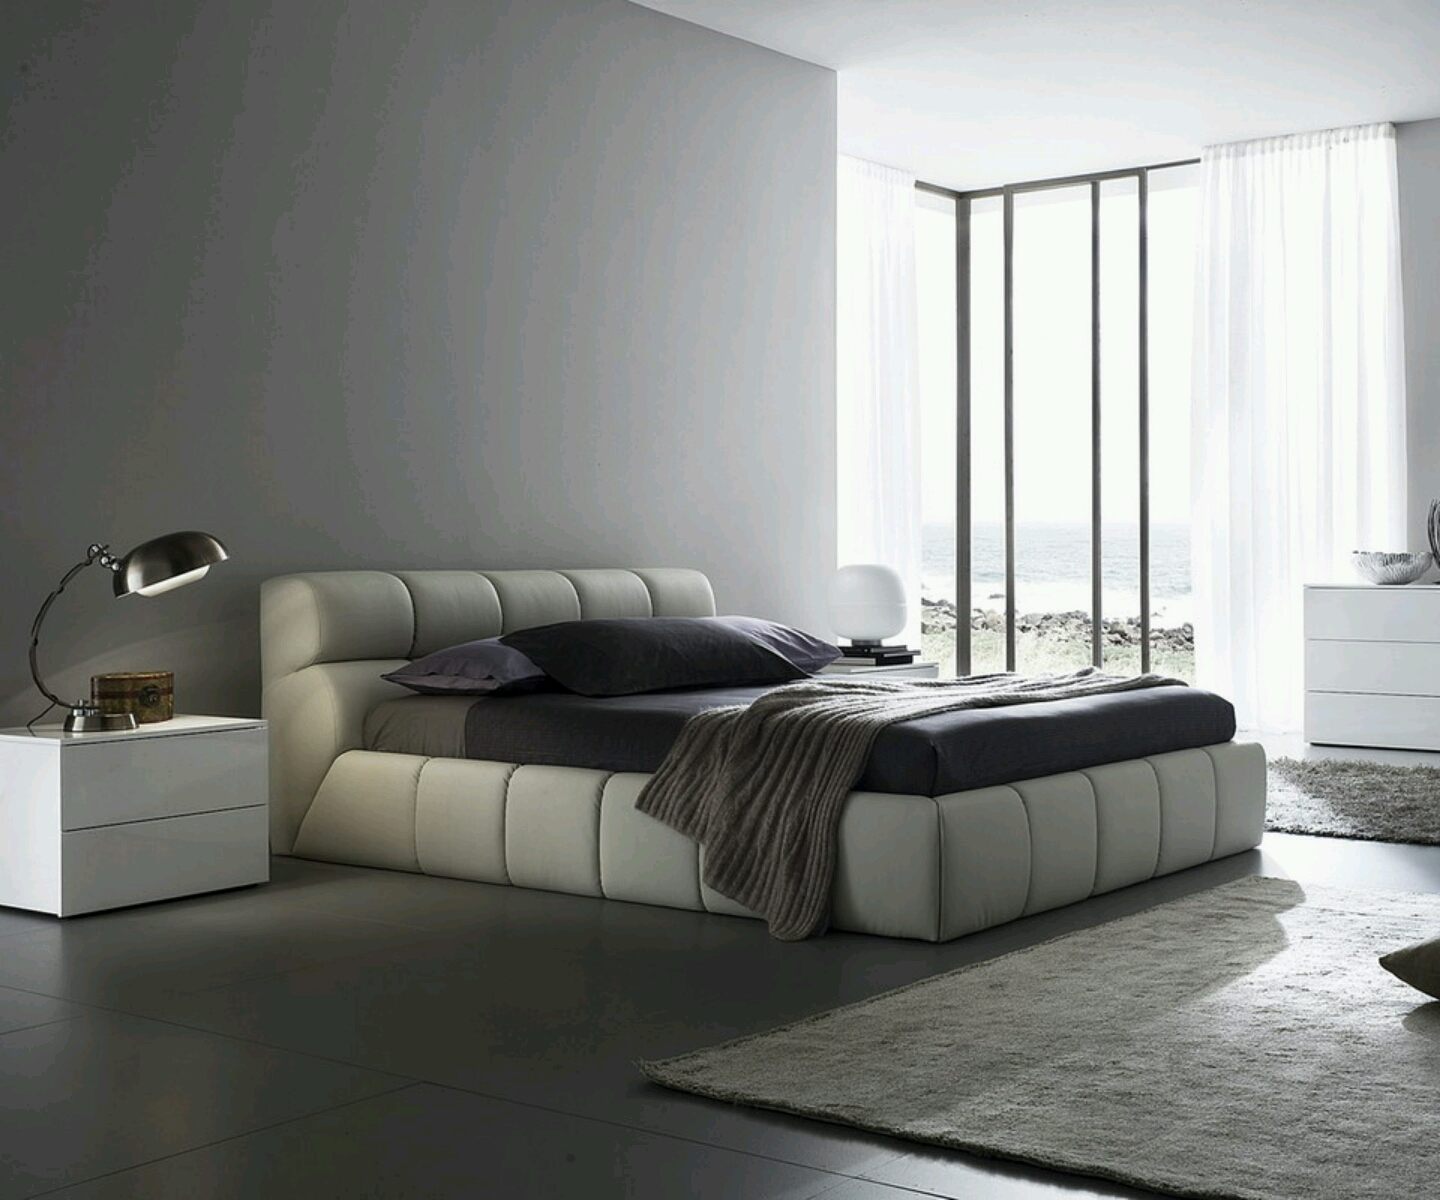 Bedroom Chair Design Ideas Image Leather Accessories Modern Furniture Bed Designs Beautiful Bedrooms